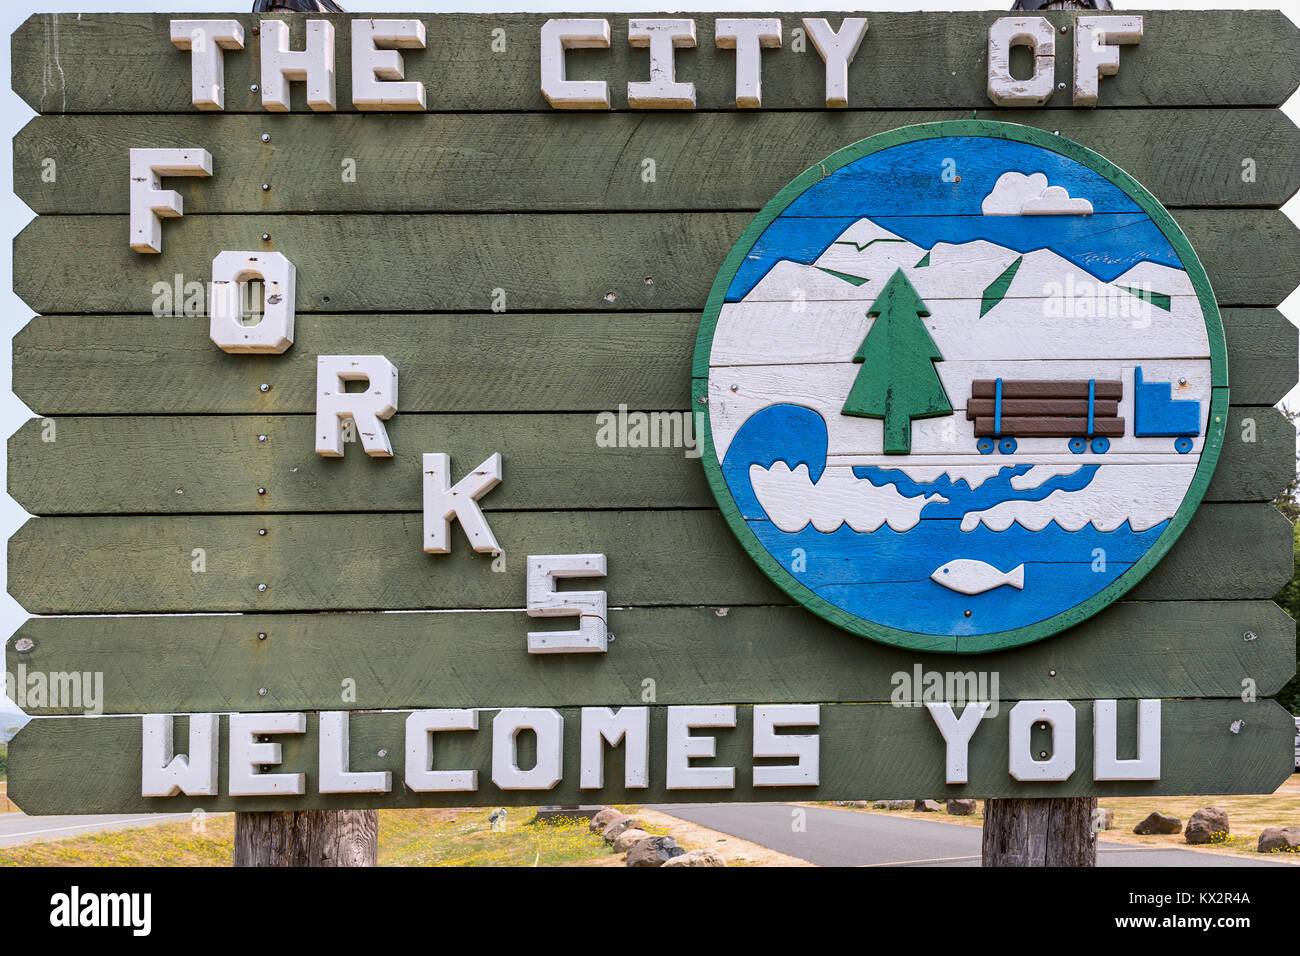 Forks, Clallam County, Washington, United States - Stock Image